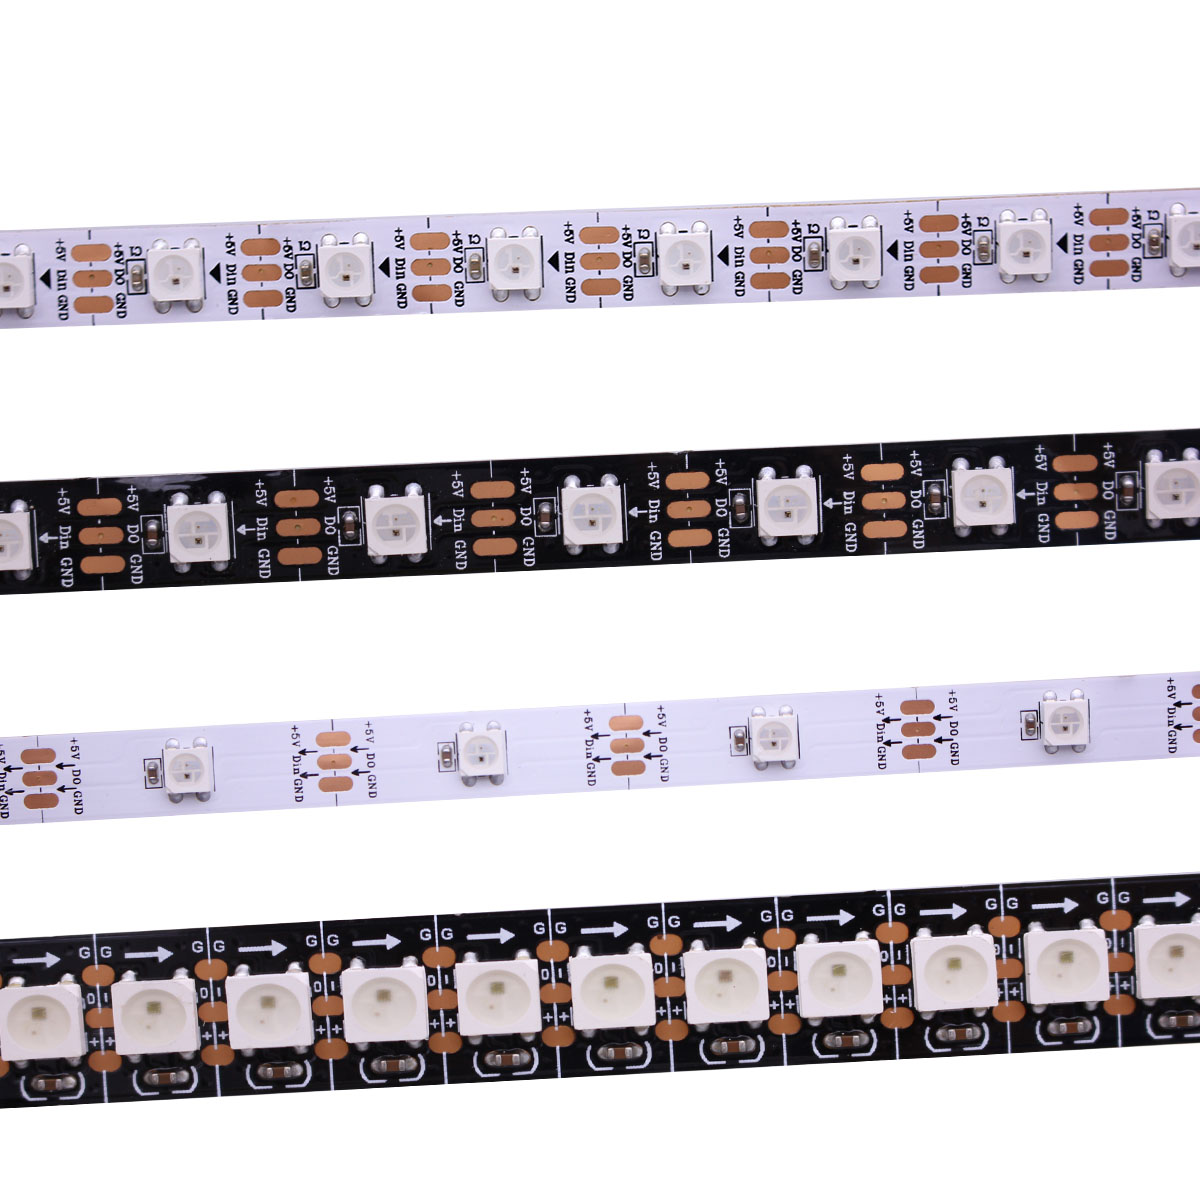 1m/5m WS2812B Smart led pixel strip,Black/White PCB,30/60/144 leds/m WS2812 IC;WS2812B/M 30/60/144 pixels,IP30/IP65/IP67 DC5V-in LED Strips from Lights & Lighting